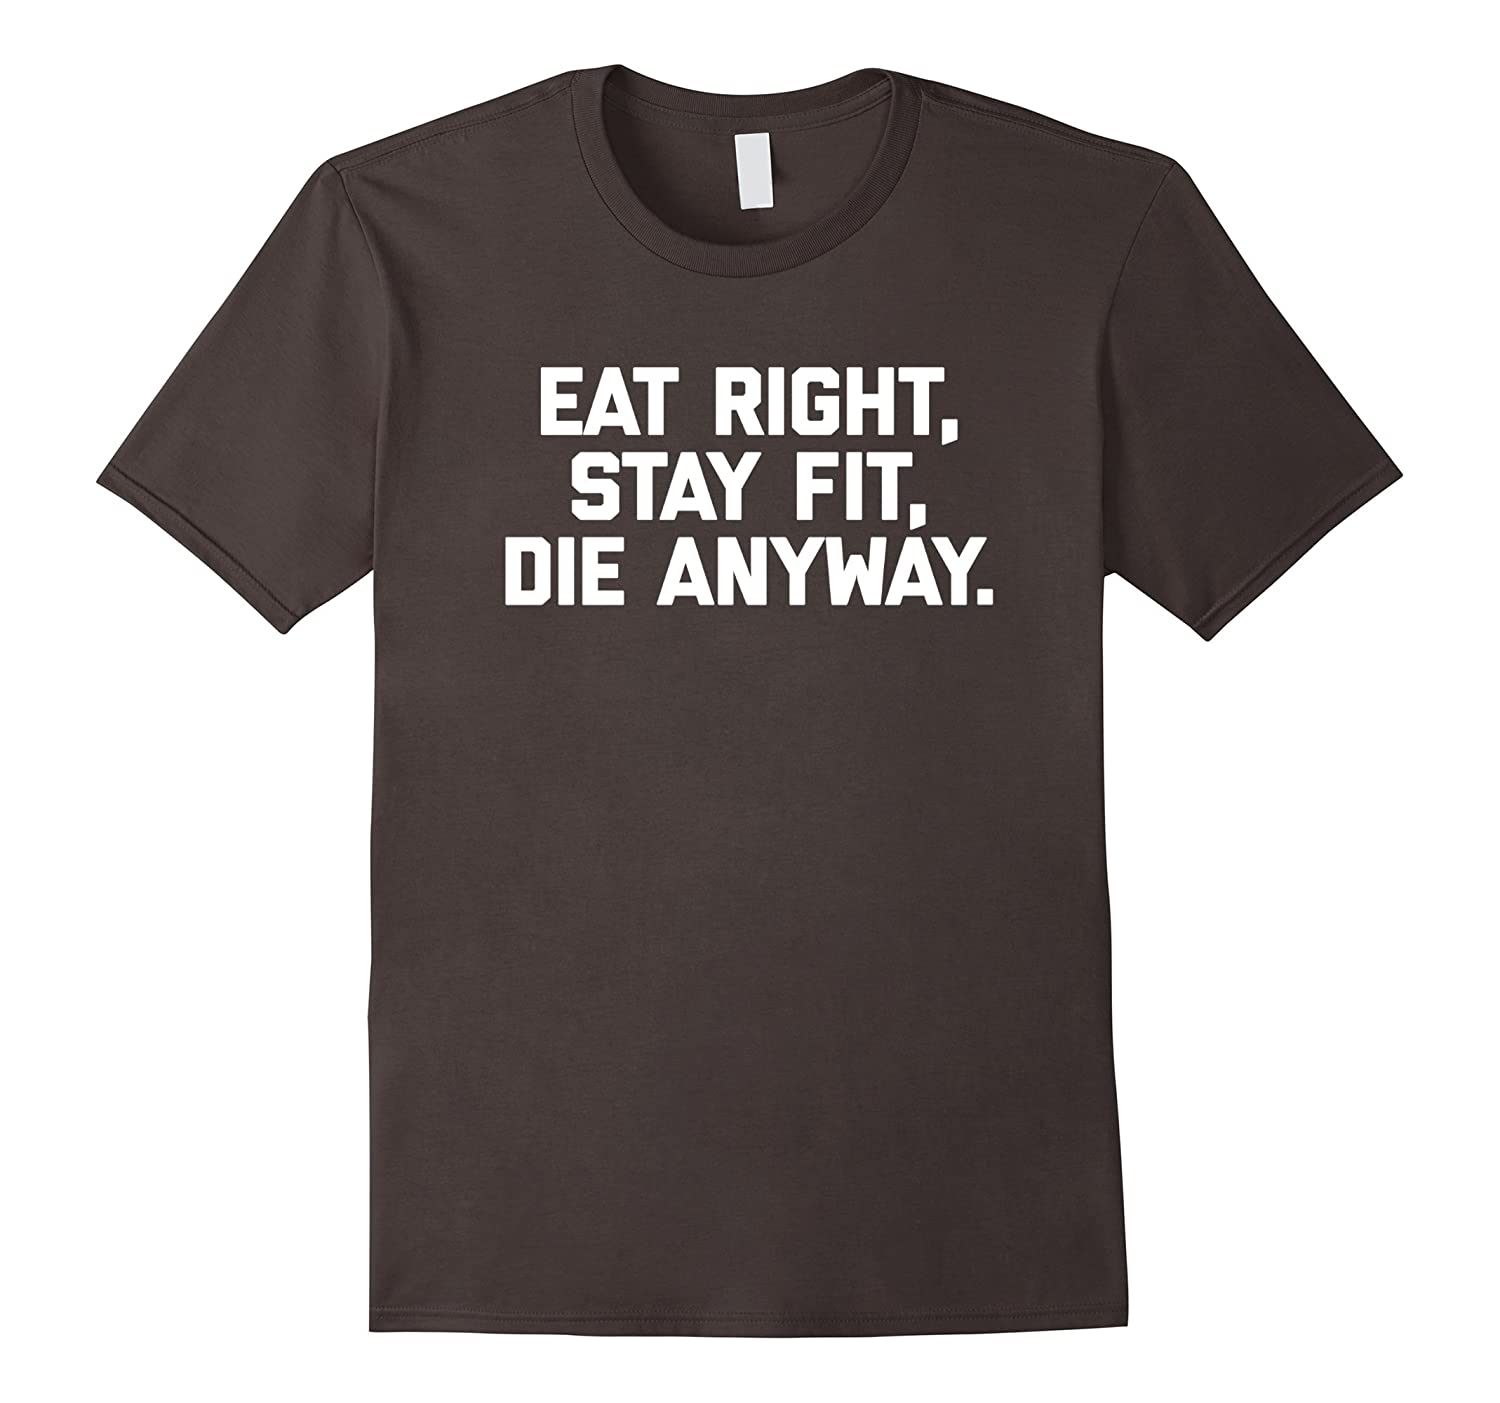 Eat Right, Stay Fit, Die Anyway T-Shirt funny saying novelty-Art